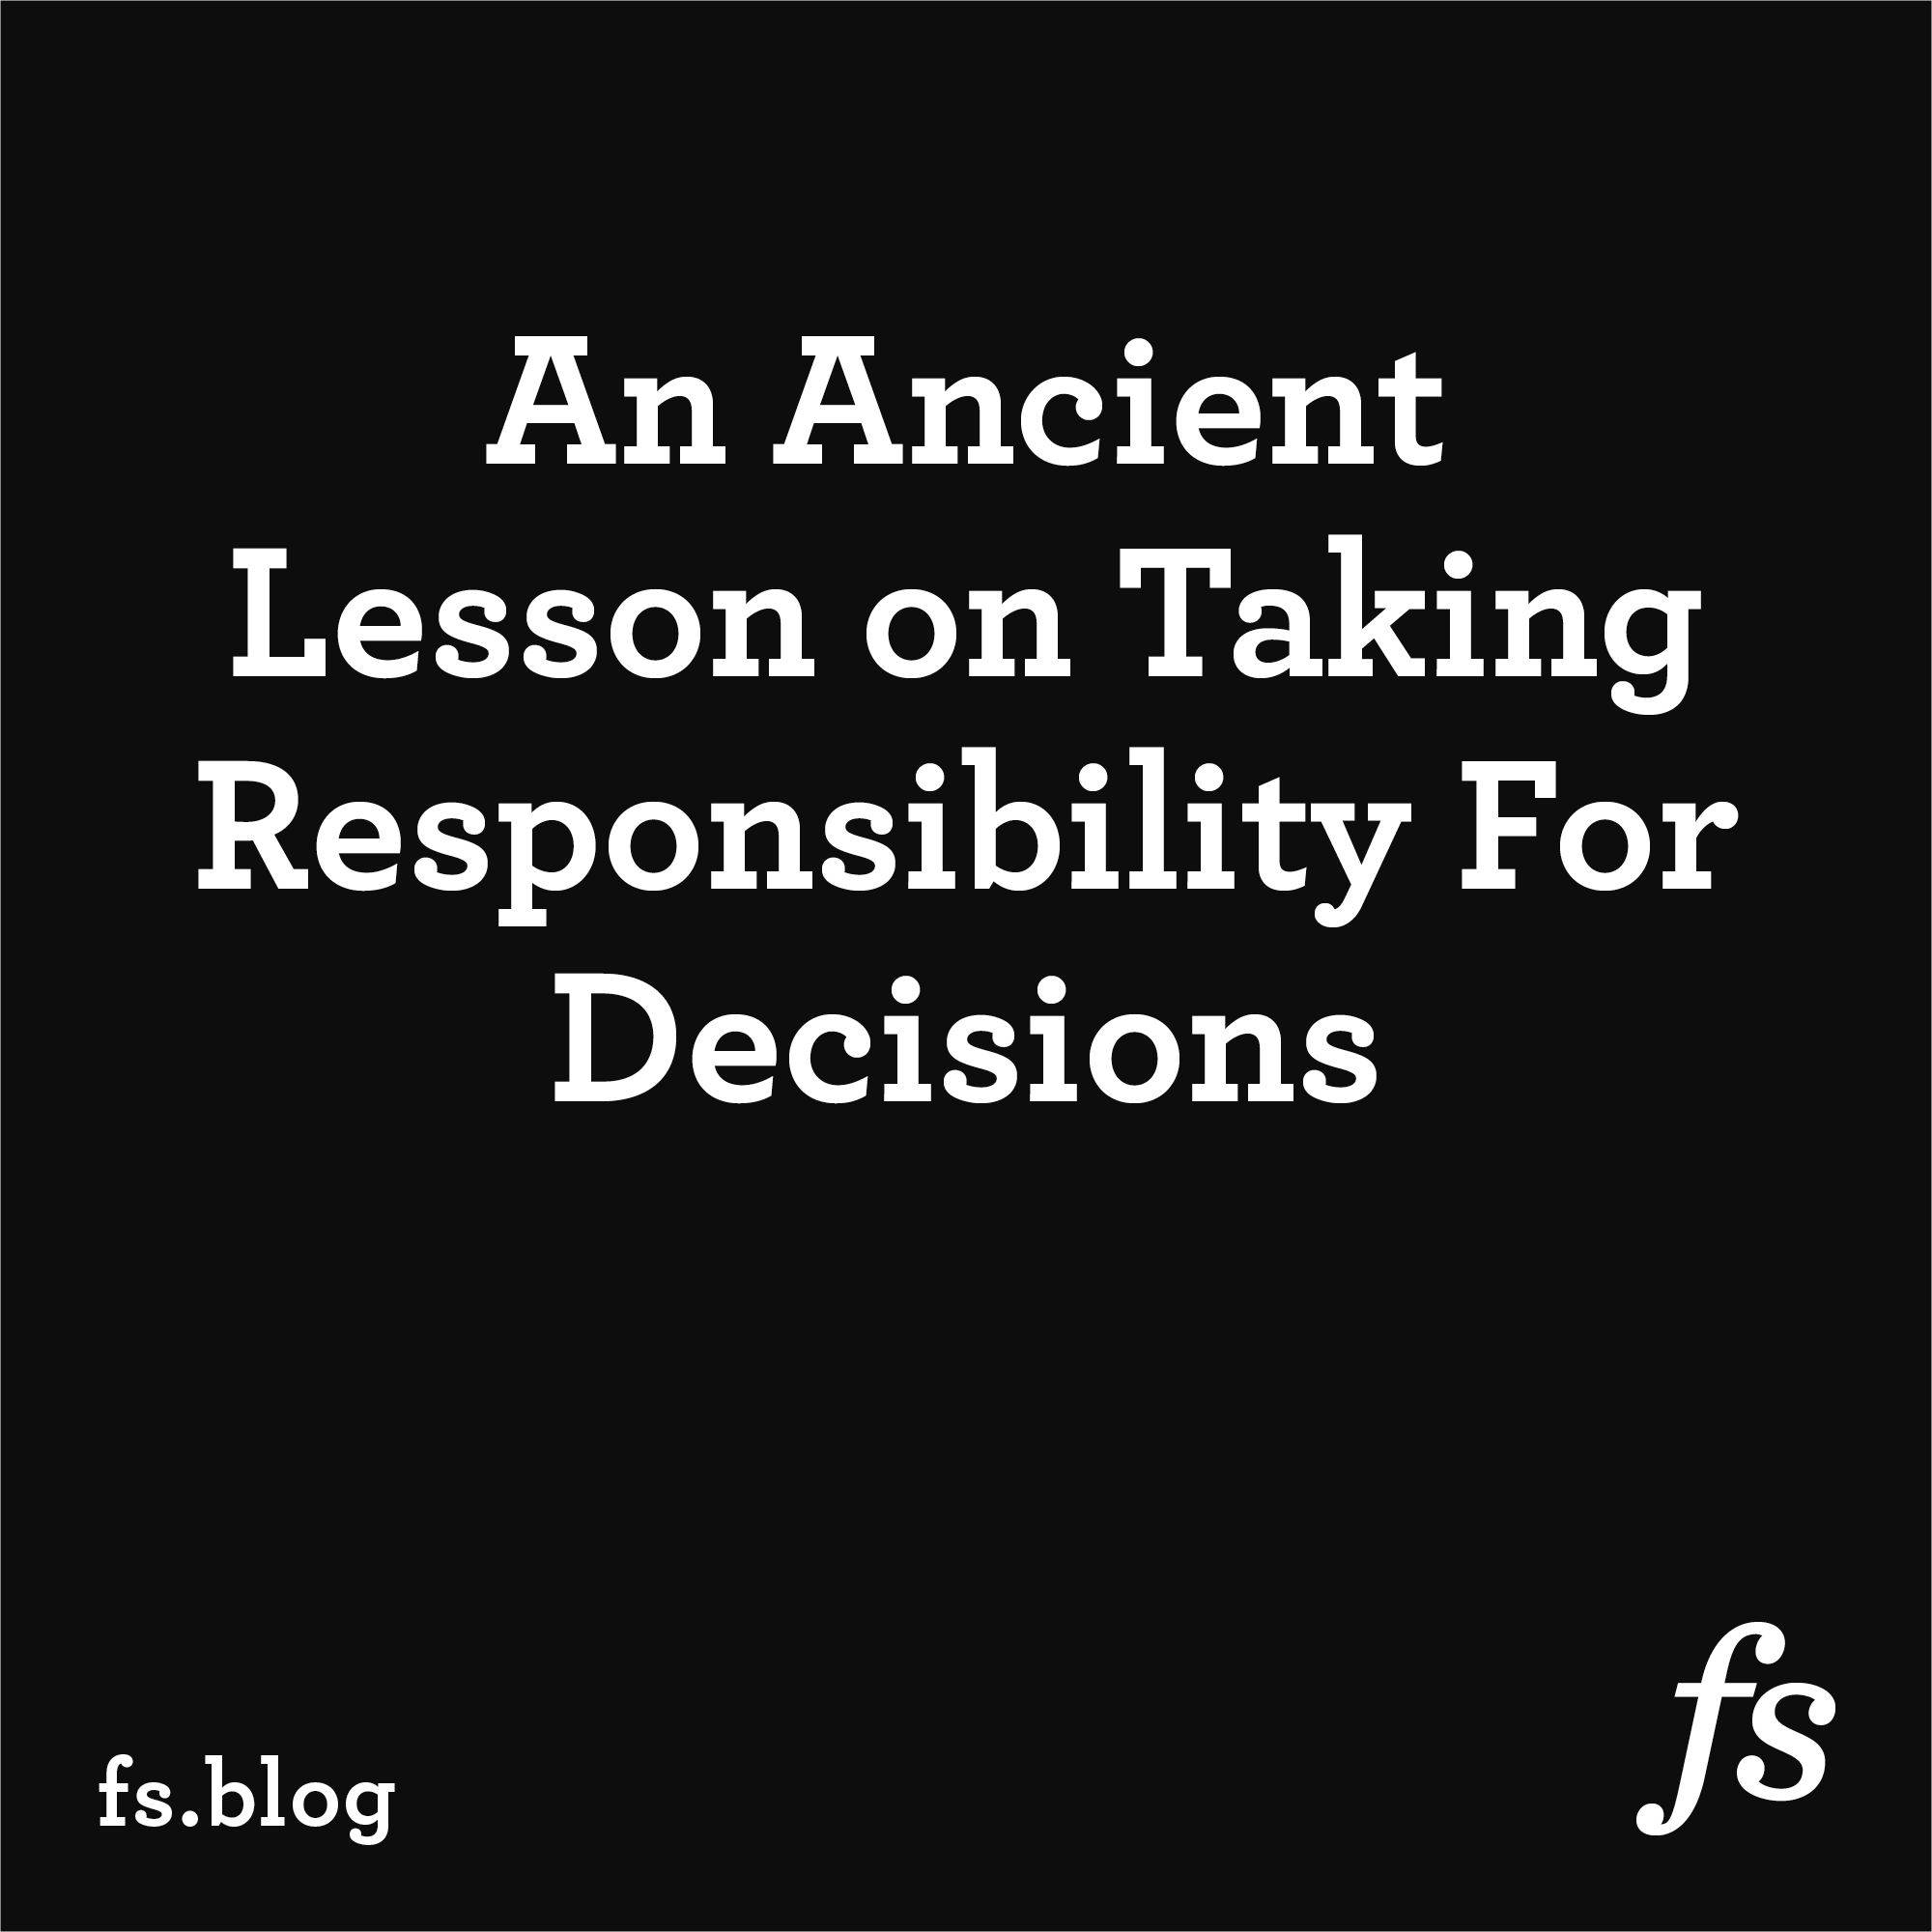 An Ancient Lesson on Taking Responsibility For Decisions